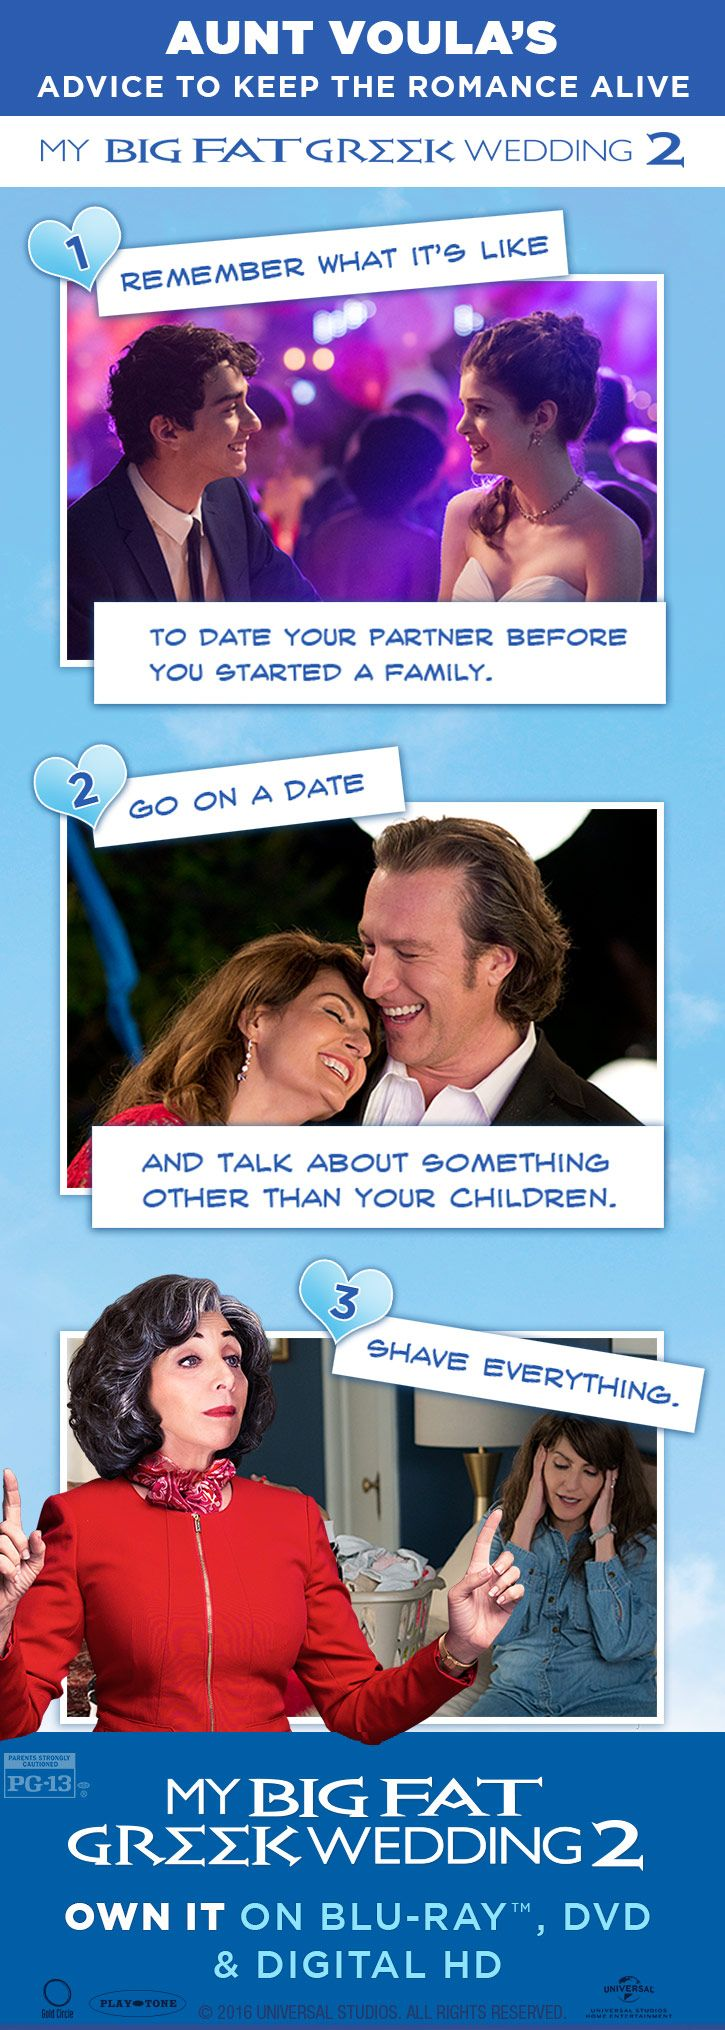 My Big Fat Greek Wedding Quotes My Big Fat Greek Wedding 2Own It On Bluray Dvd & Digital Hd